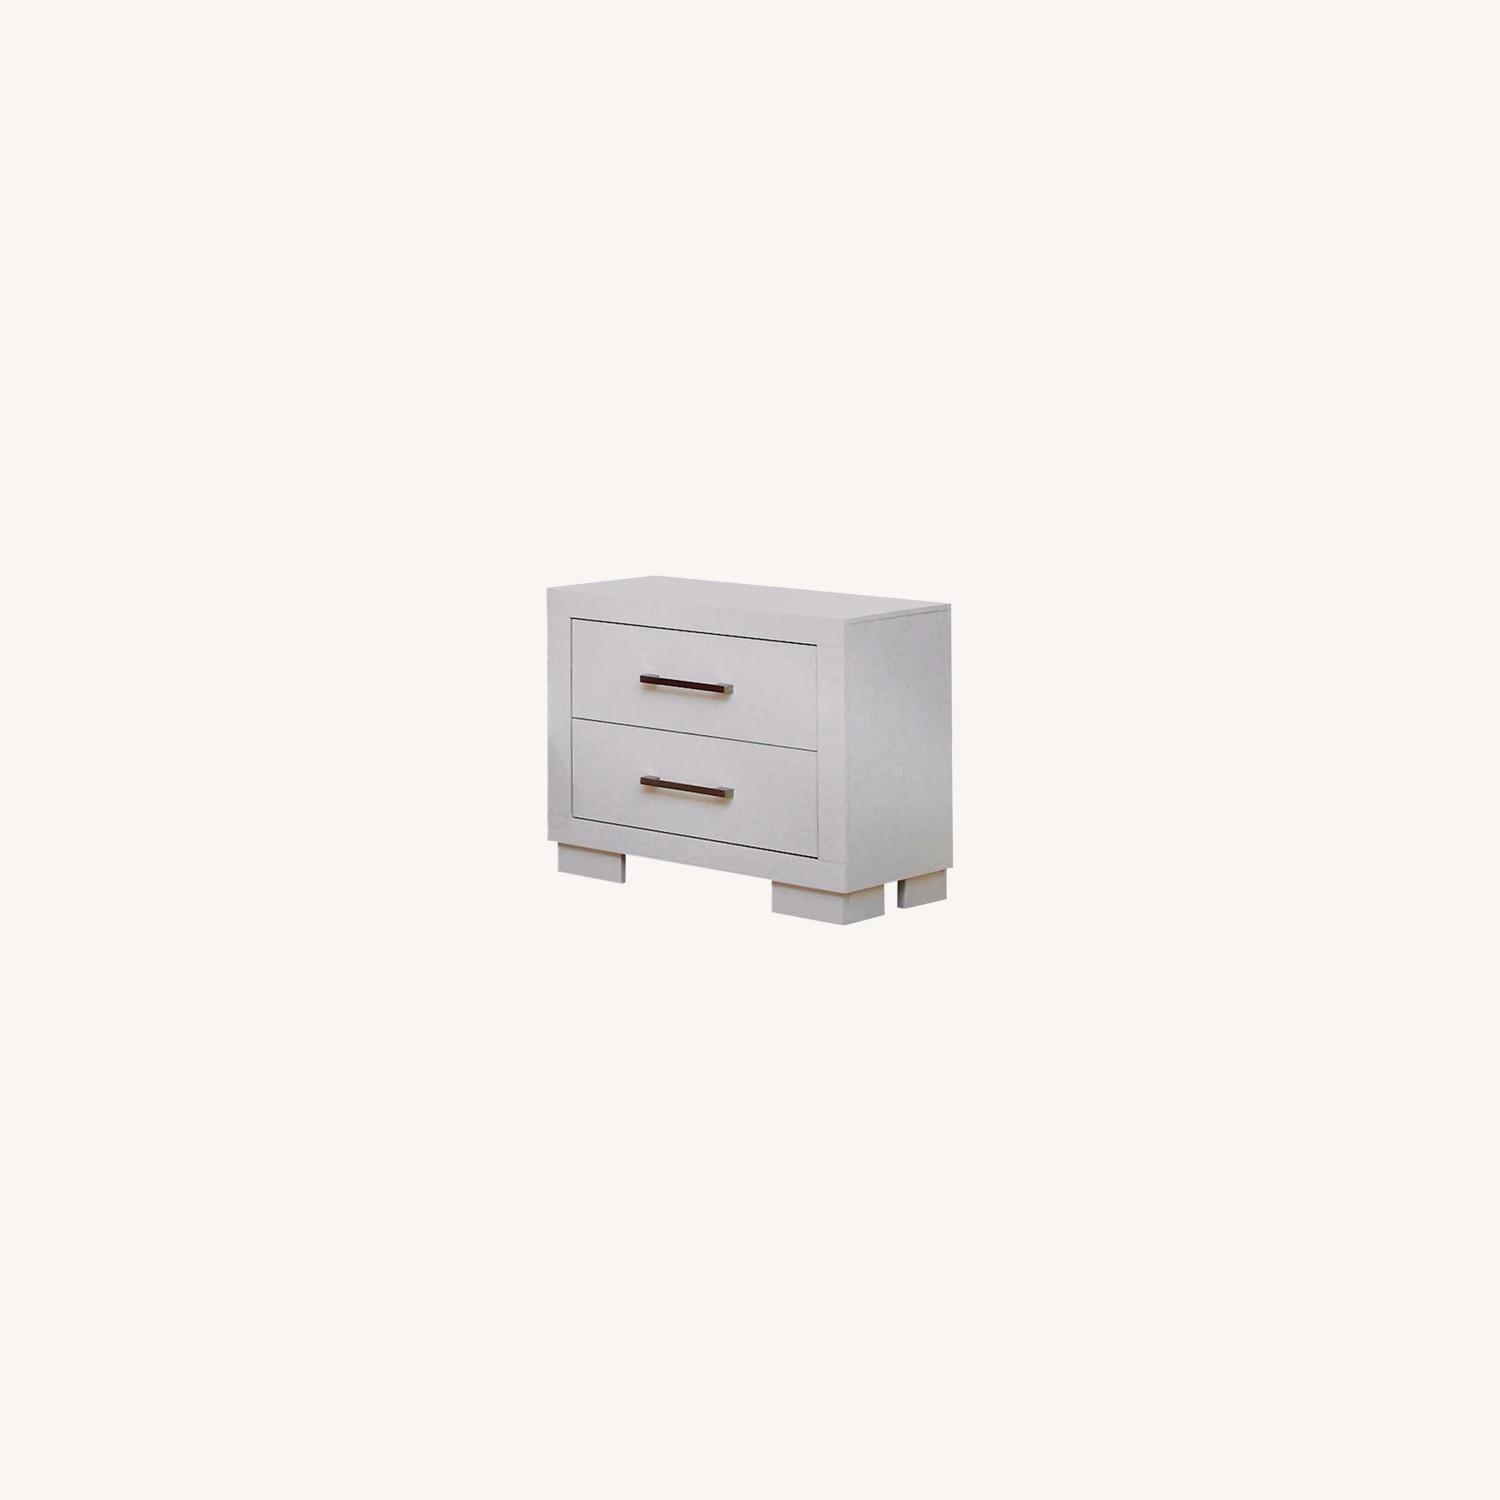 Minimalist Nightstand In White Finish - image-4